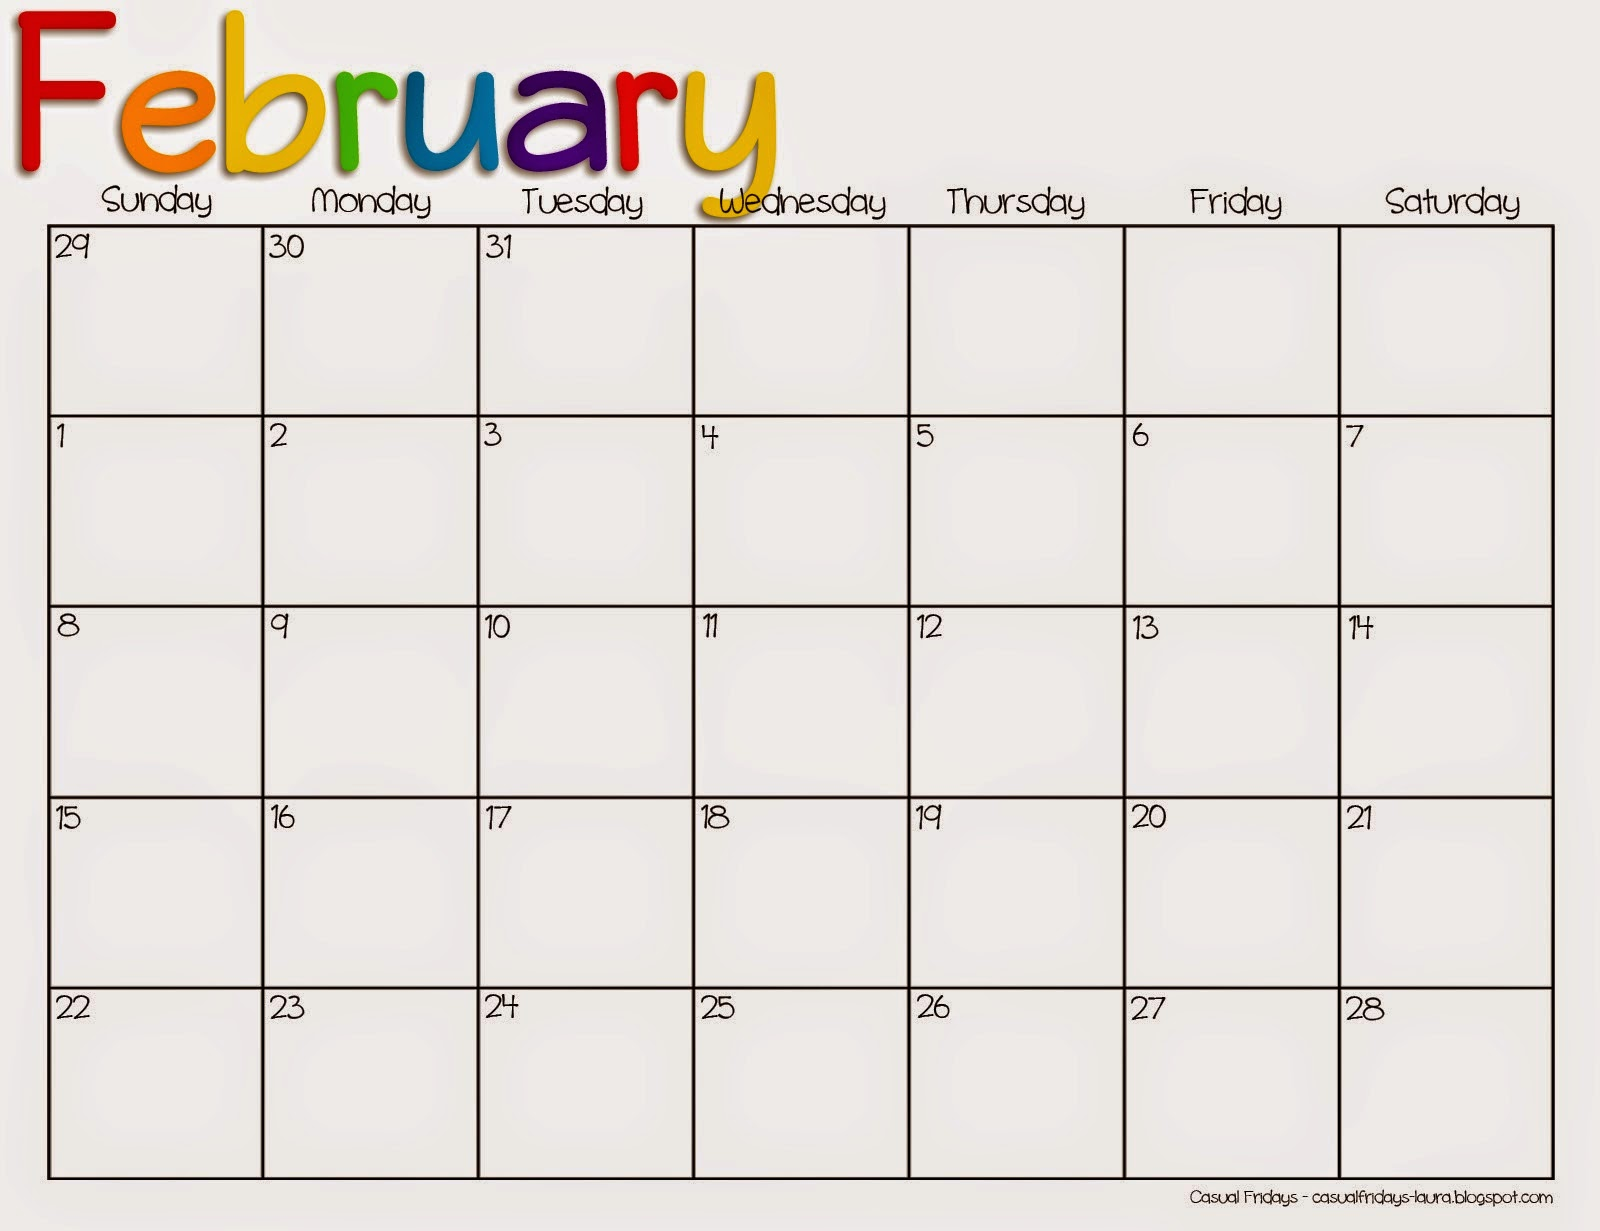 february calendar 2015 template the star spangled banner some